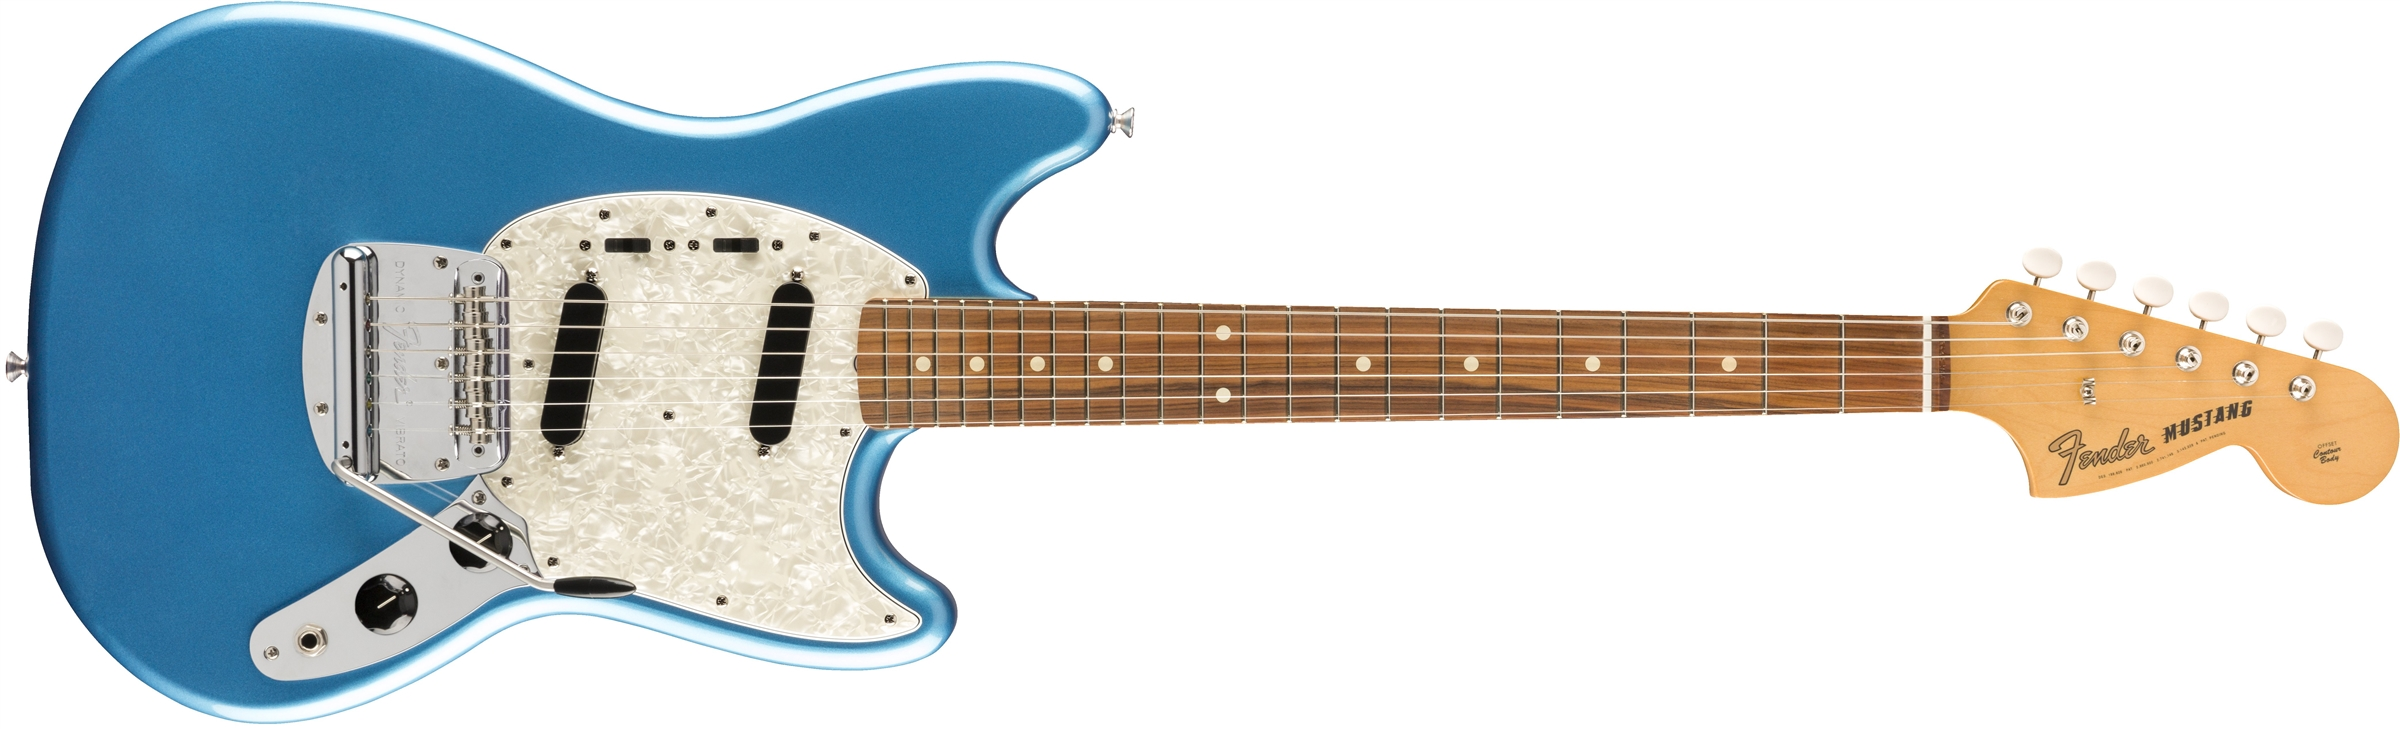 FENDER-Vintera-60s-Mustang-PF-Lake-Placid-Blue-0149783302-sku-23098